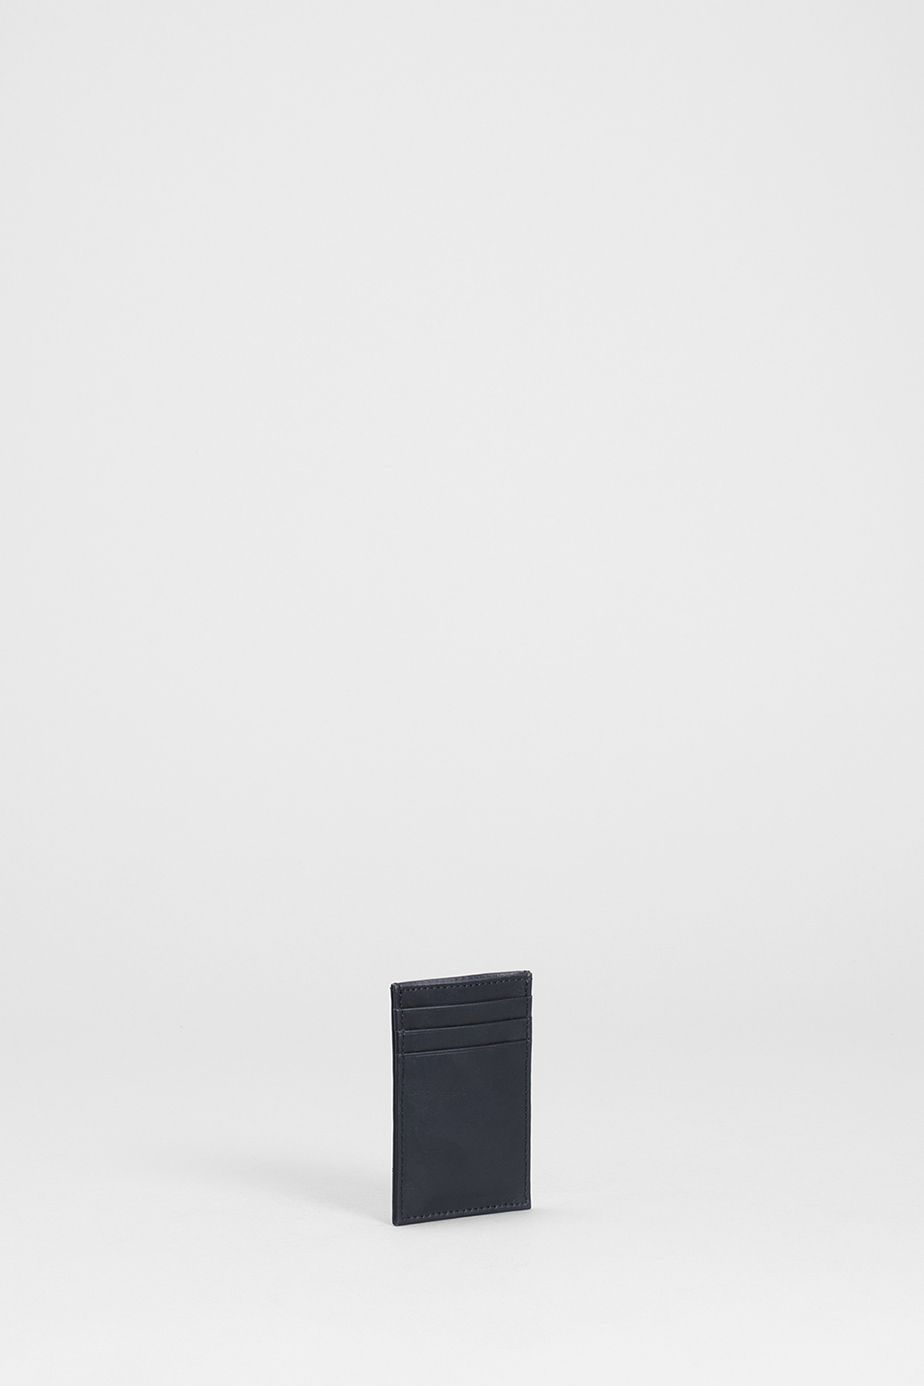 ELK The Label - Olbu Leather Card Holder - Black online at PAYA boutique